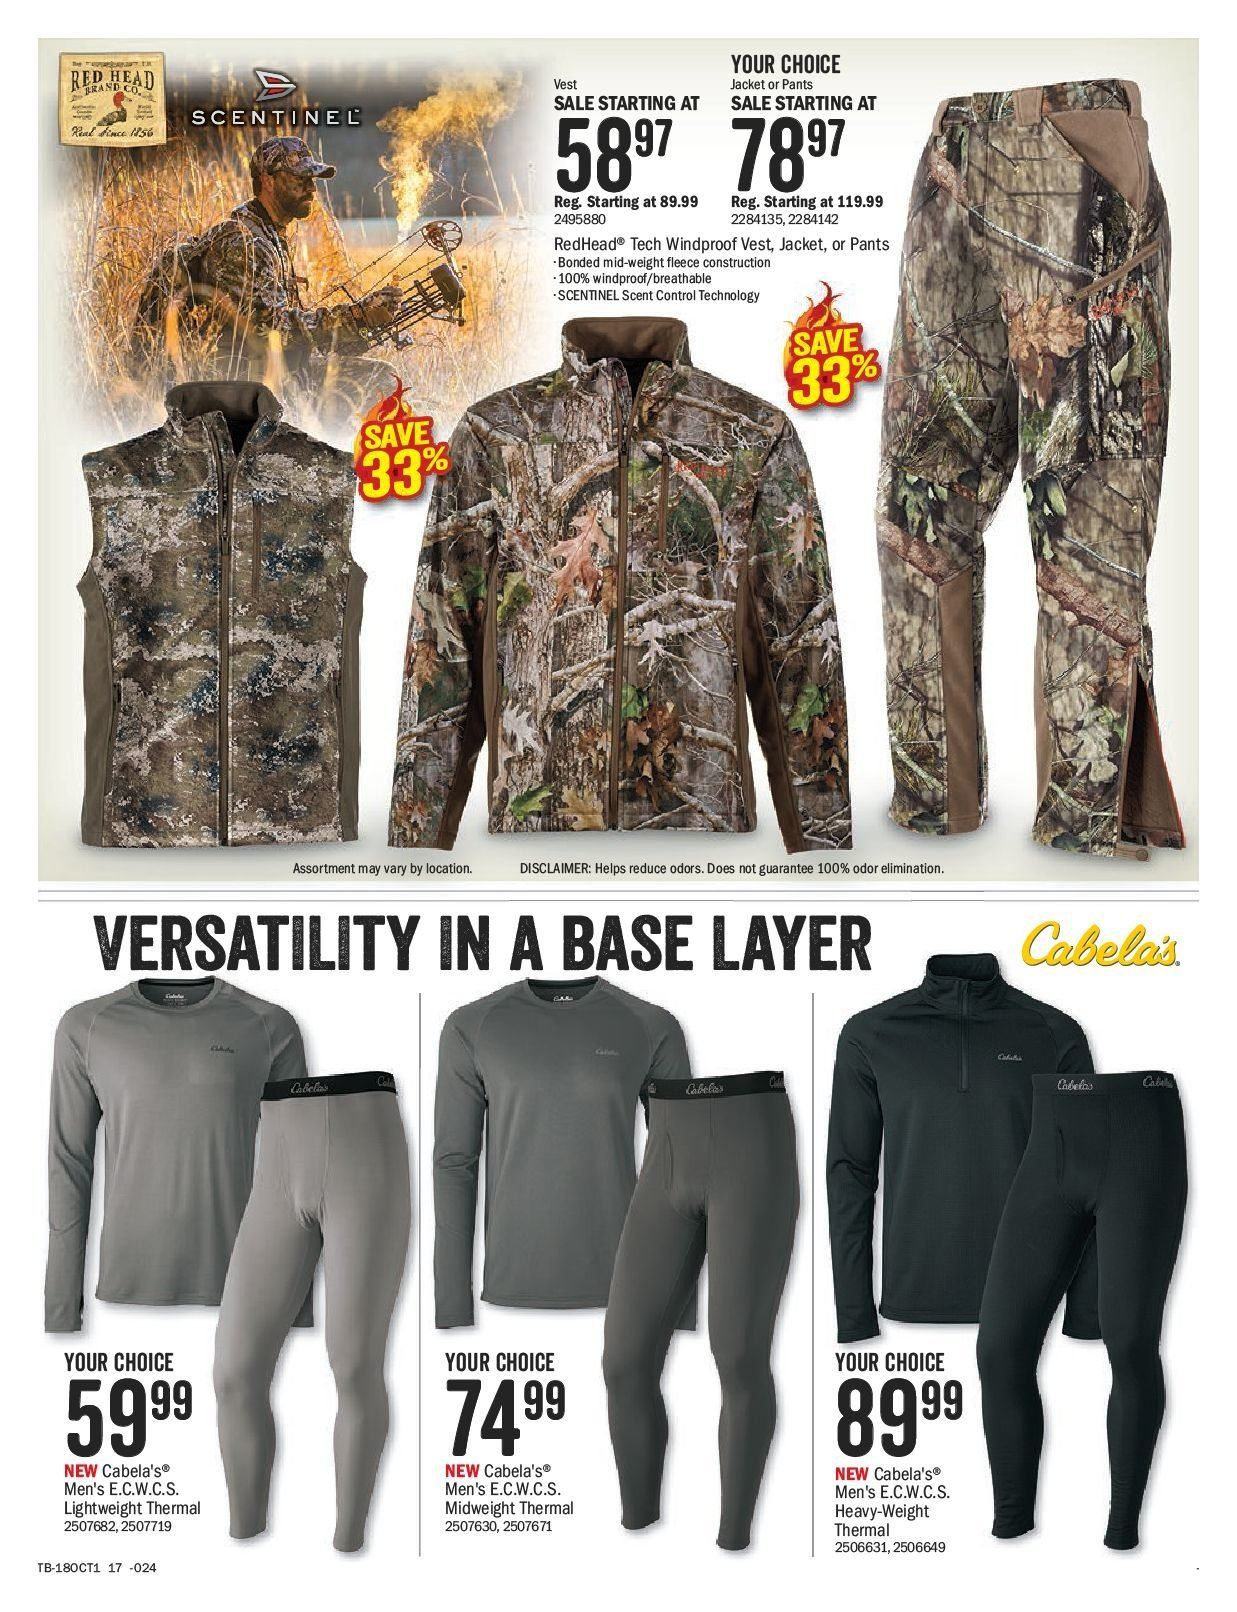 Bass Pro Shops Flyer  - September 21, 2018 - October 07, 2018. Page 17.